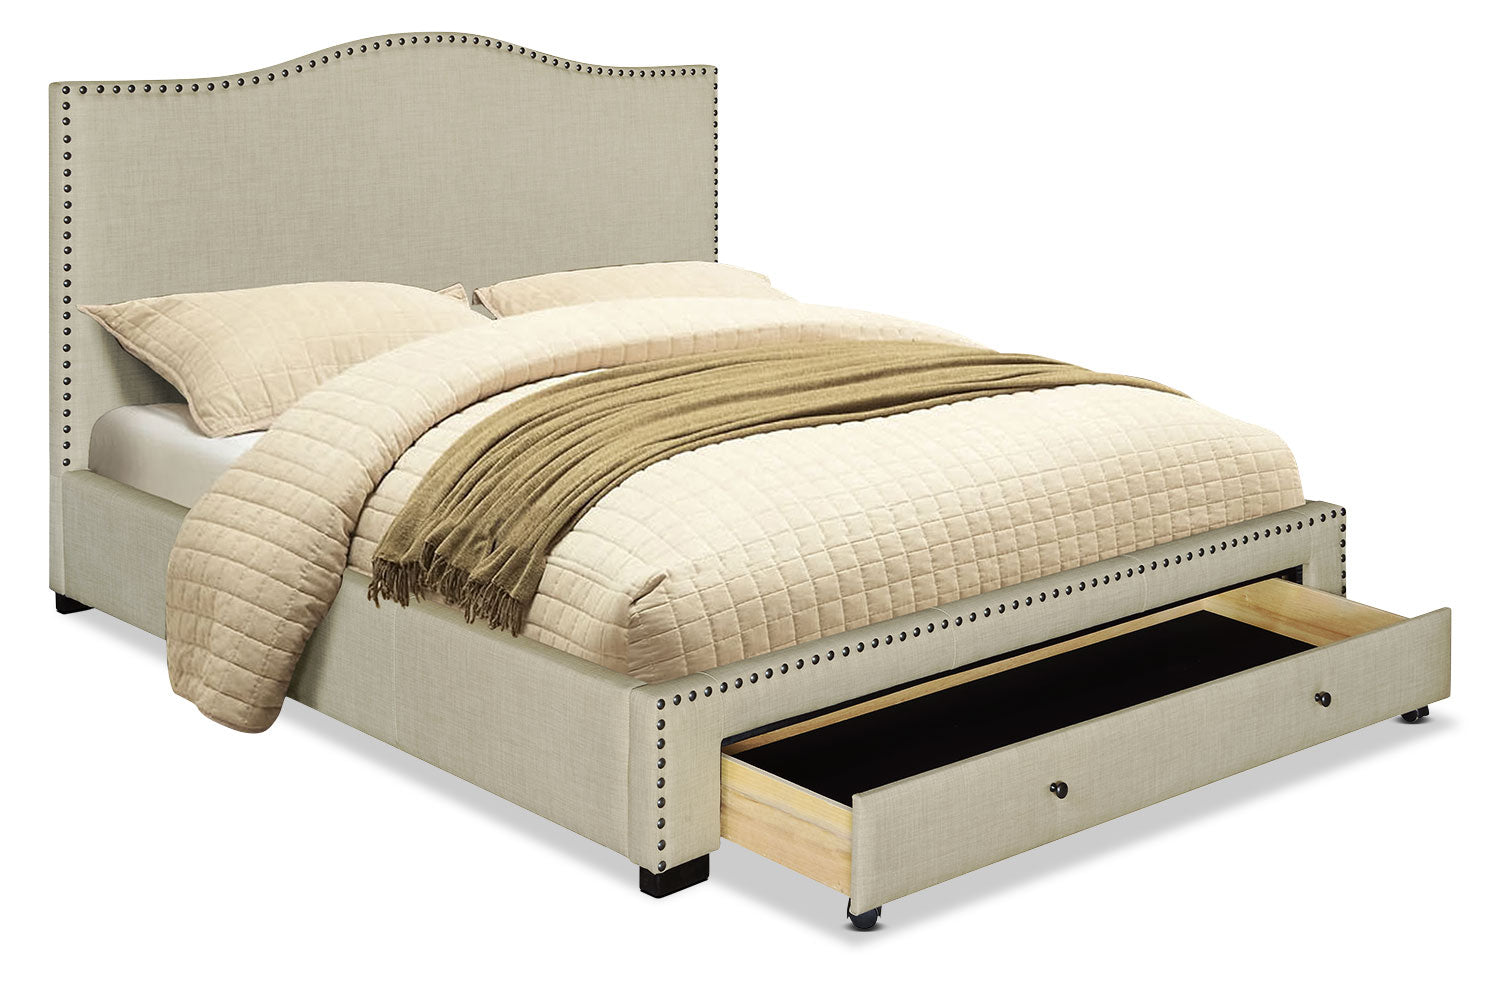 Luxor King Bed – Beige | The Brick